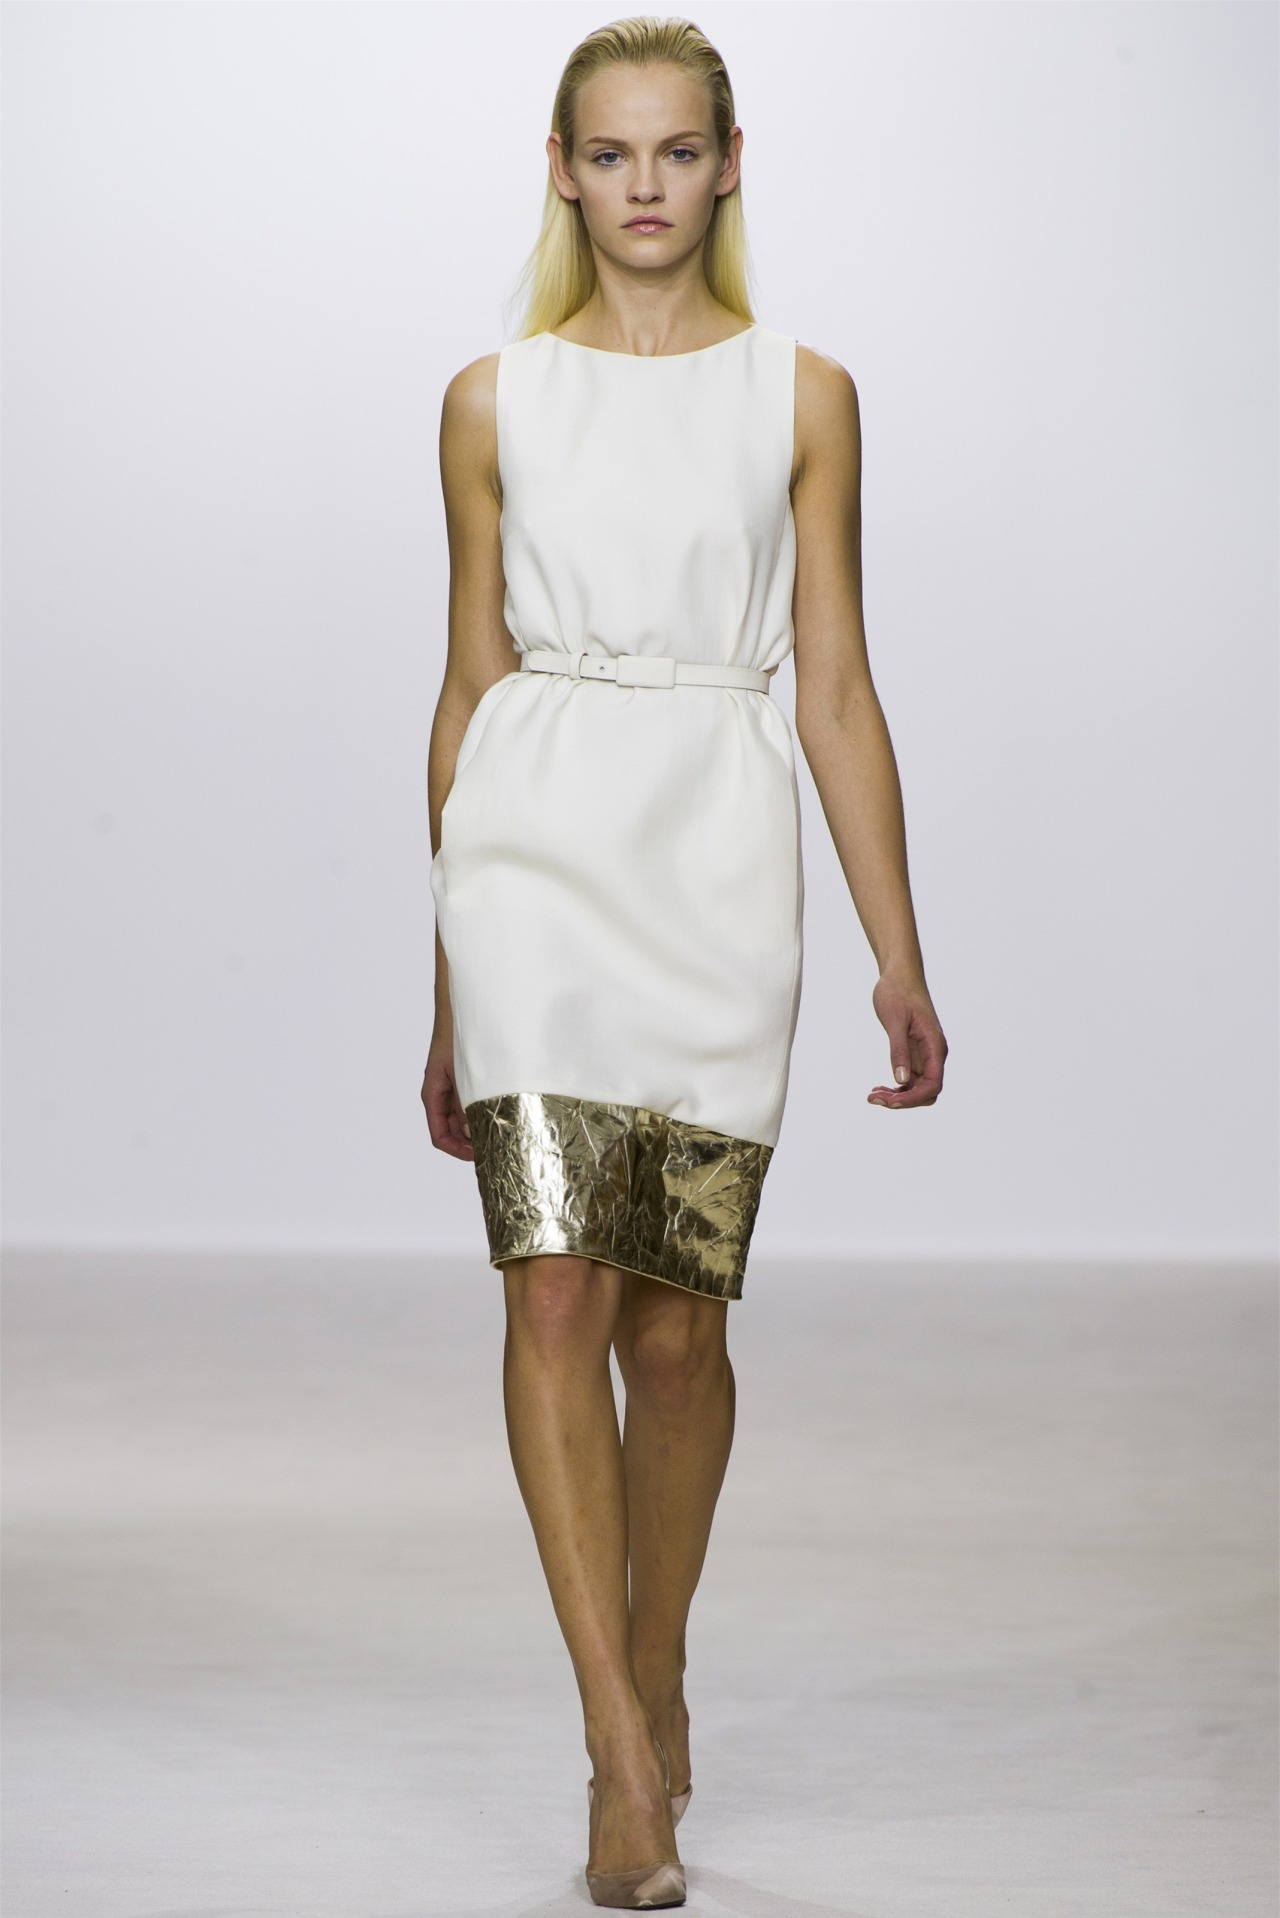 rougevision:  Giambattista Valli Ready to Wear Spring - Summer 2013. Model: Ginta Lapina.